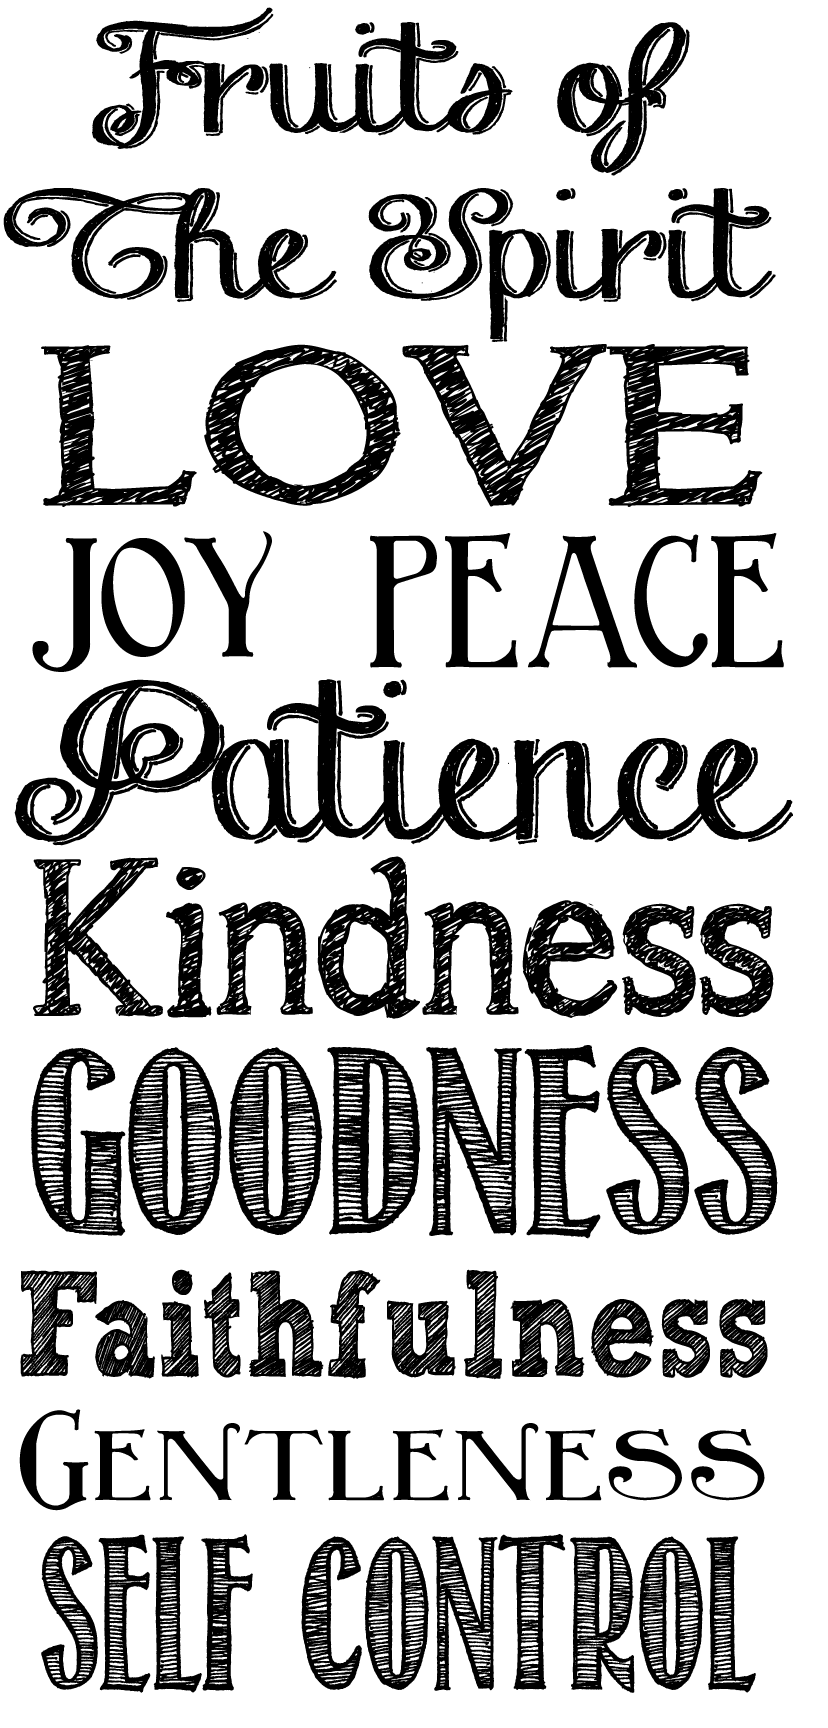 Childrens coloring pages for the fruits of the spirit - Galatians 5 22 Fruit Of The Spirit Printable Png